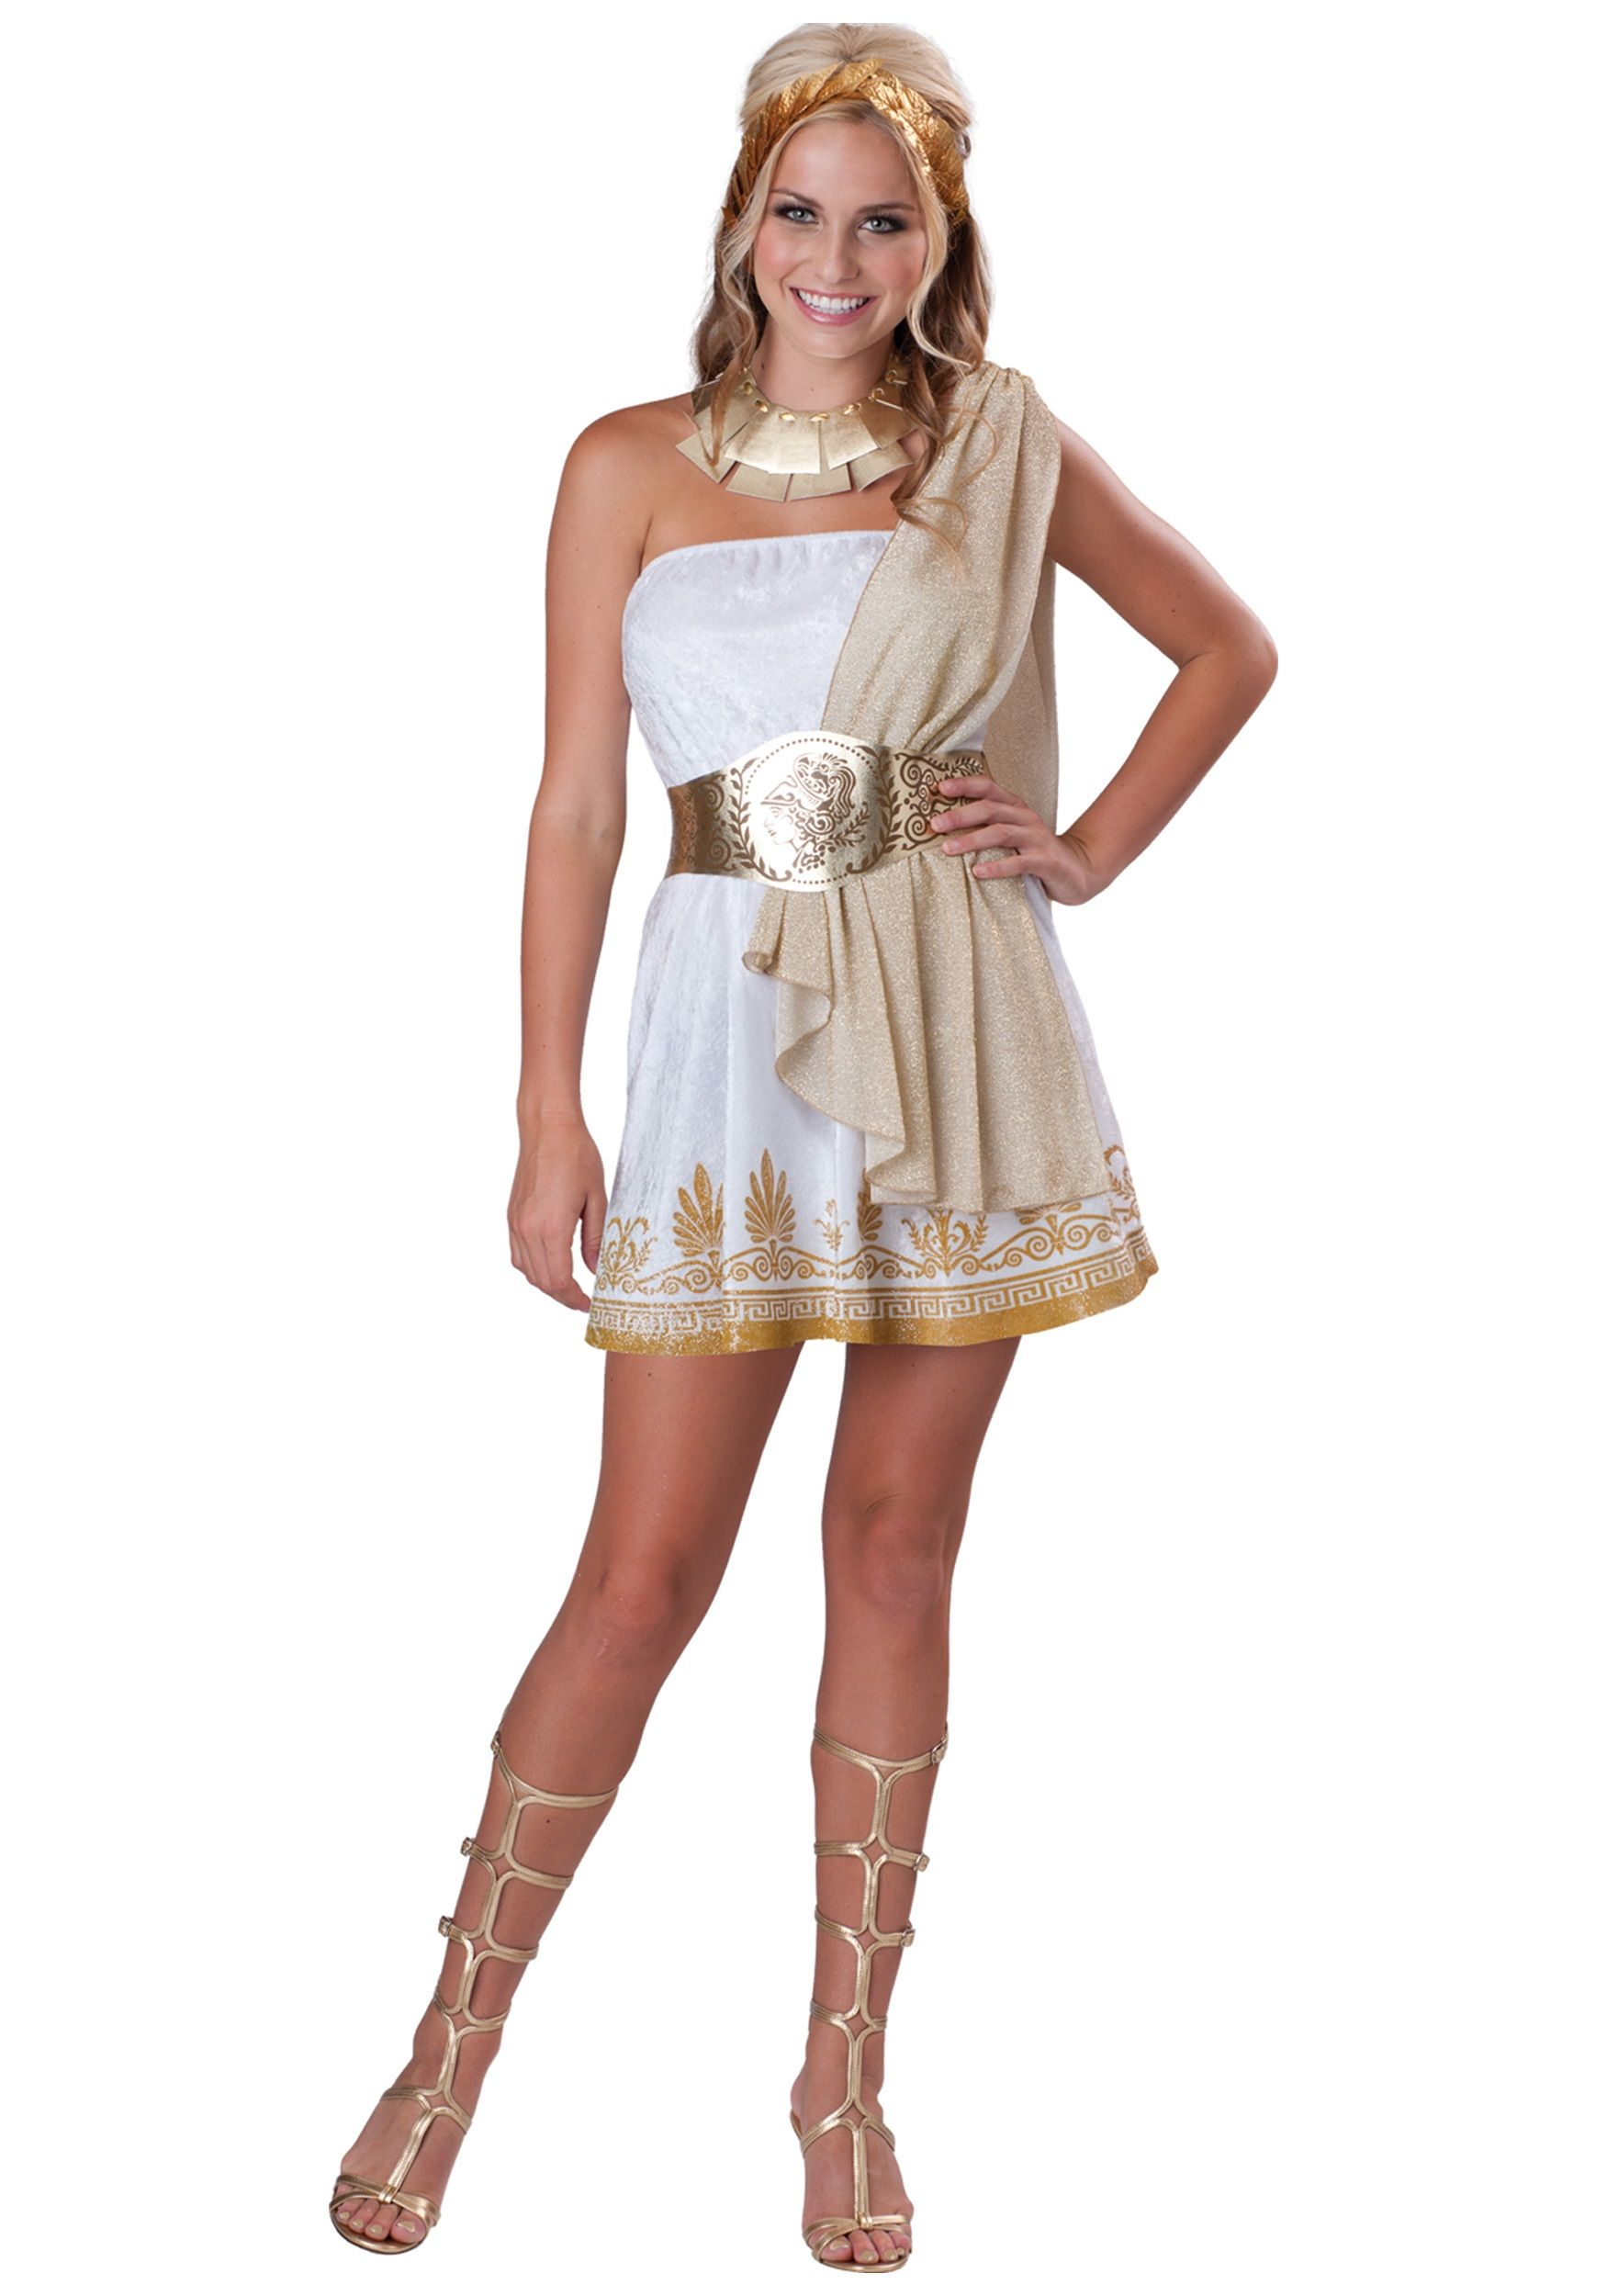 greek goddess look though prob a few alterations, longer dress